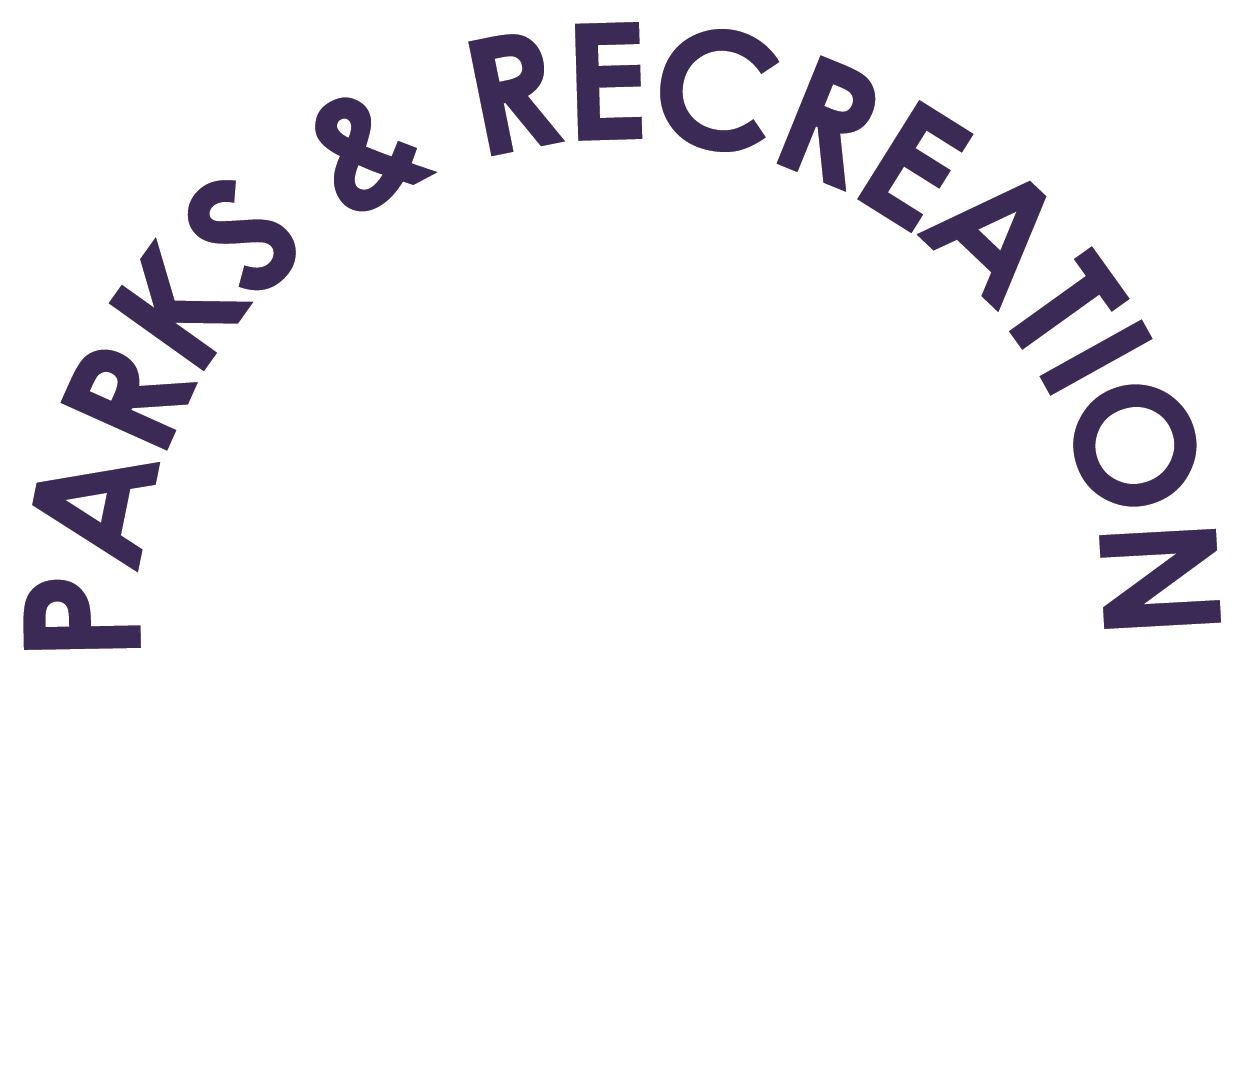 Parks and Rec website logo